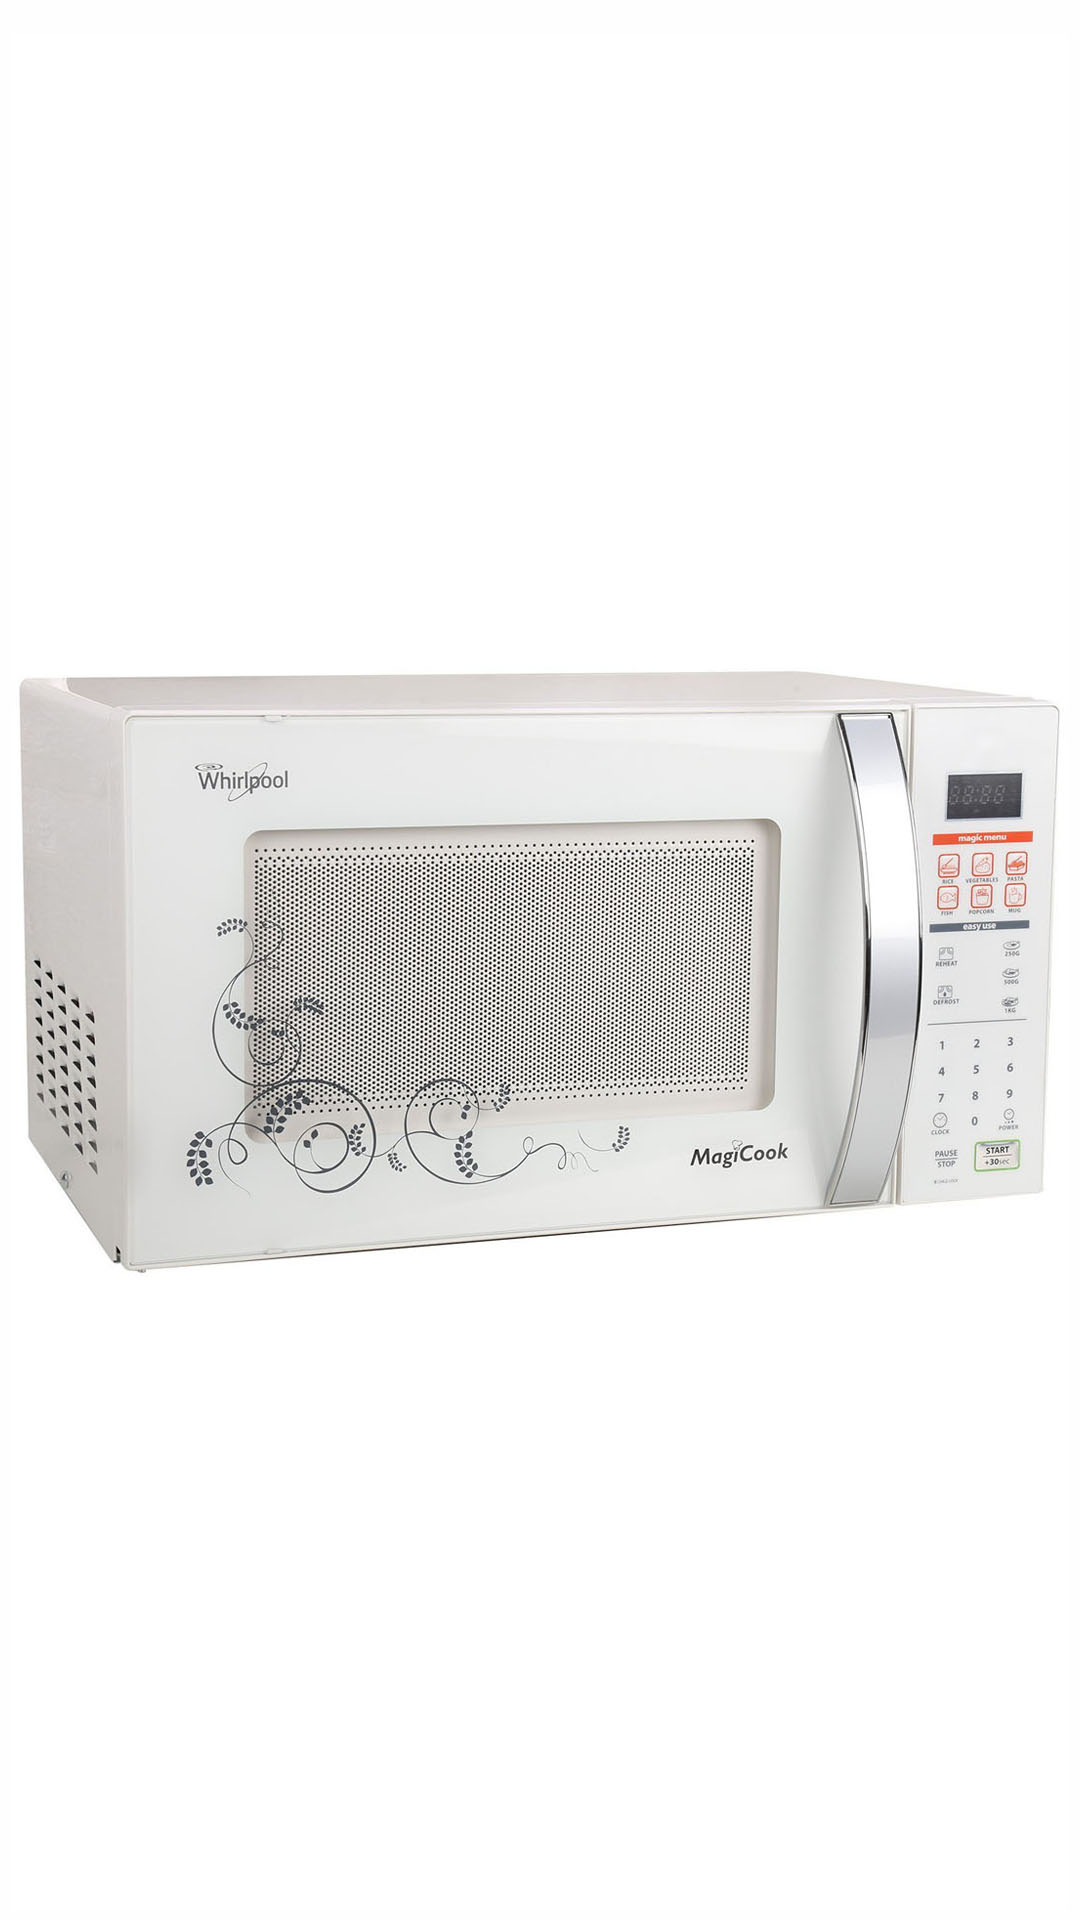 Whirlpool Magicook 20l Classic New 20 L Solo Microwave